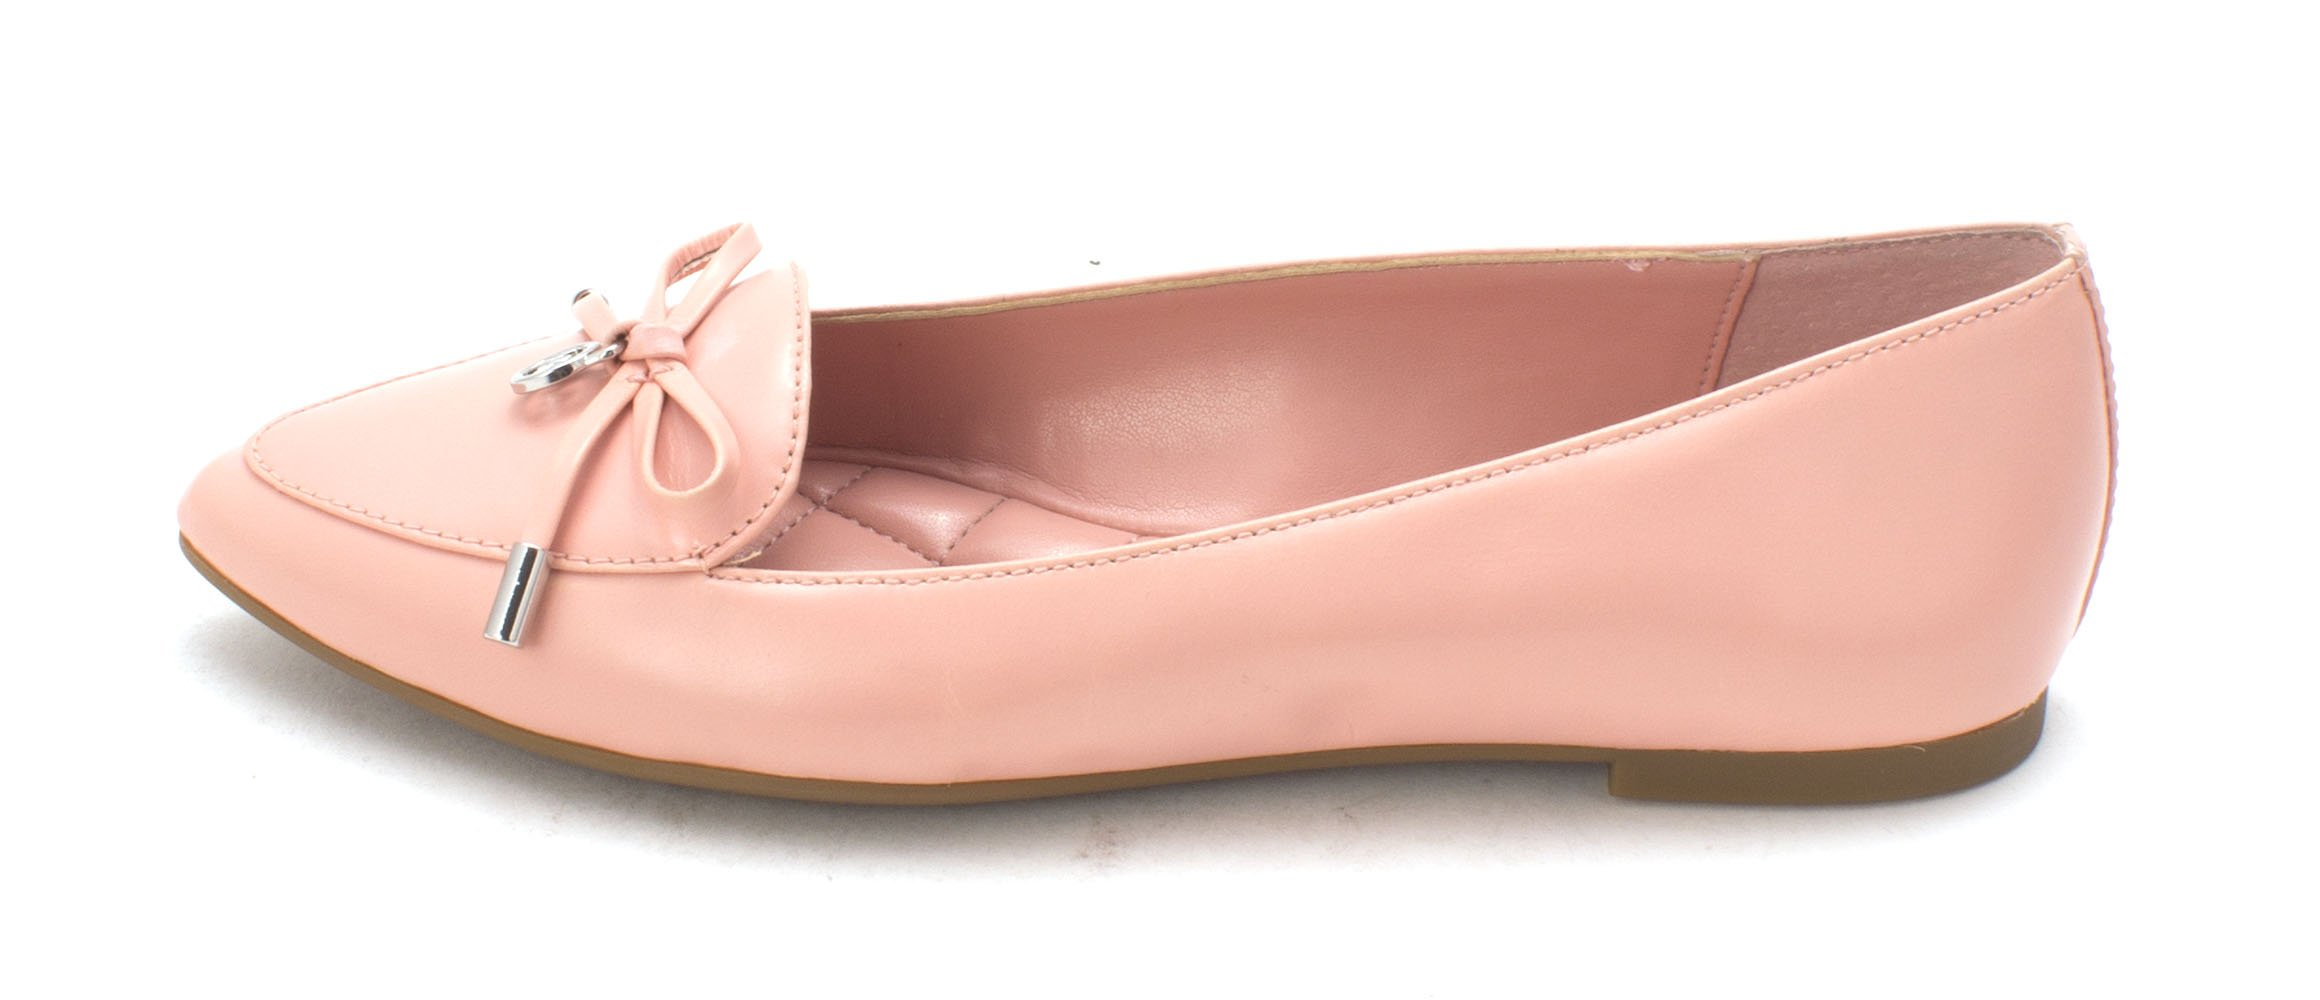 MICHAEL Michael Kors Womens Nancy Pointed Toe Leather Slide Flats, Pink, Size 5